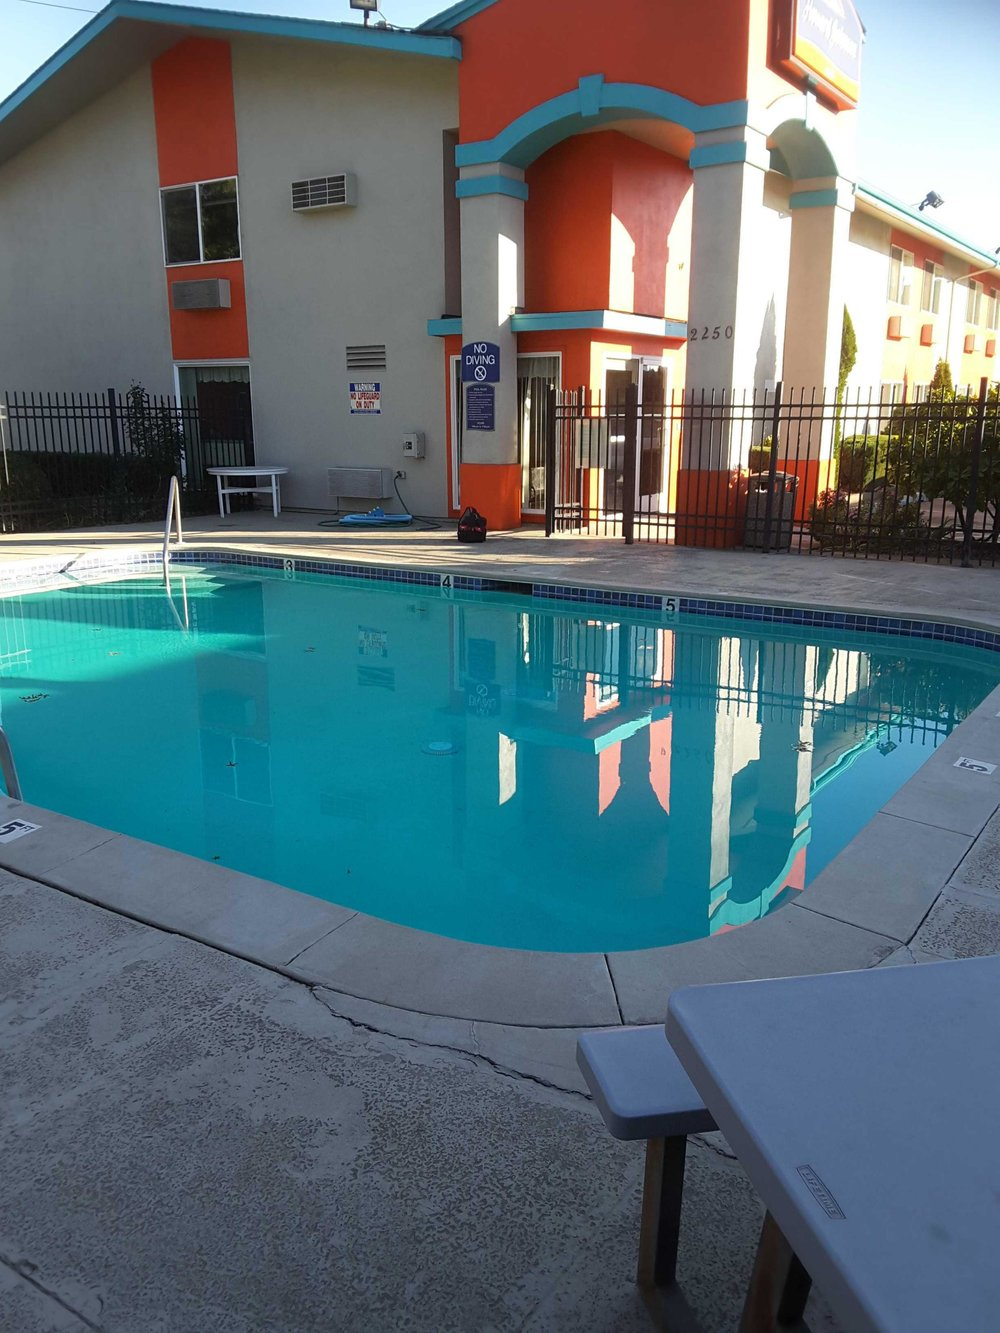 Commercial pool inspections